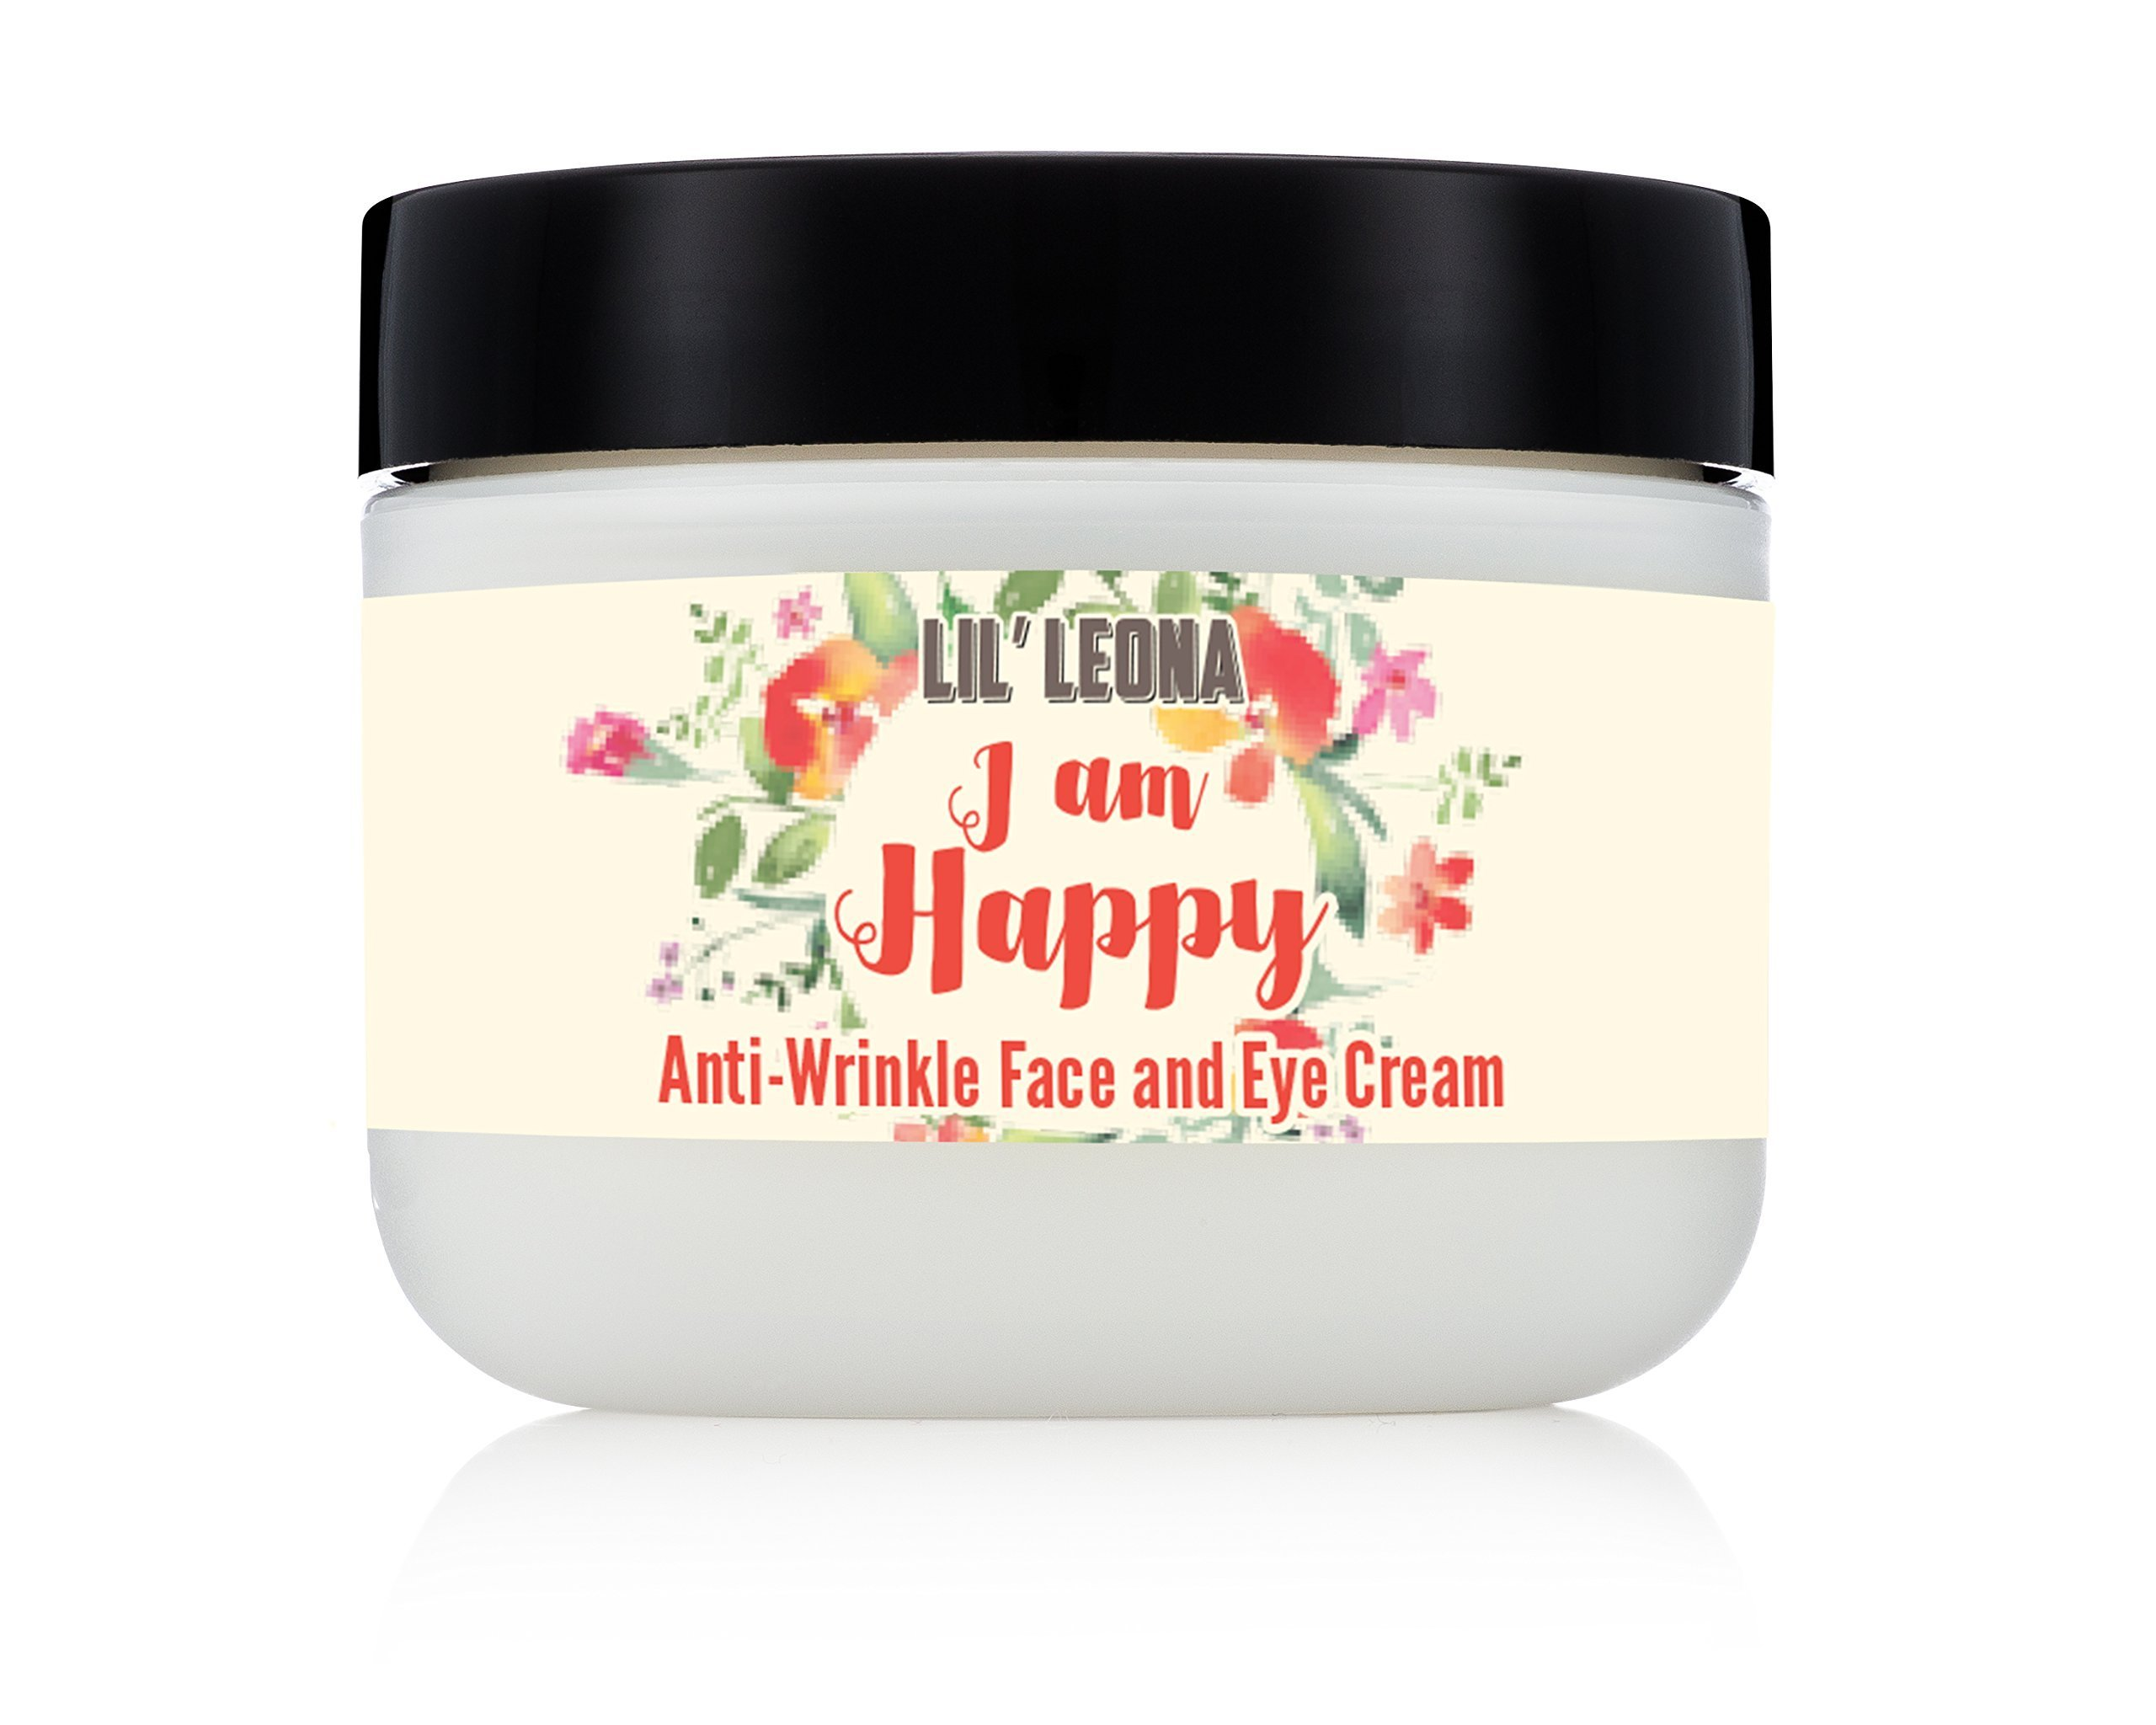 Lil Leona Face Lotion: Face Cream for Sensitive, Dry or Oily Skin. Night and Day Anti-Aging and Anti-Wrinkle Facial Moisturizer for Women and Men - 2 oz